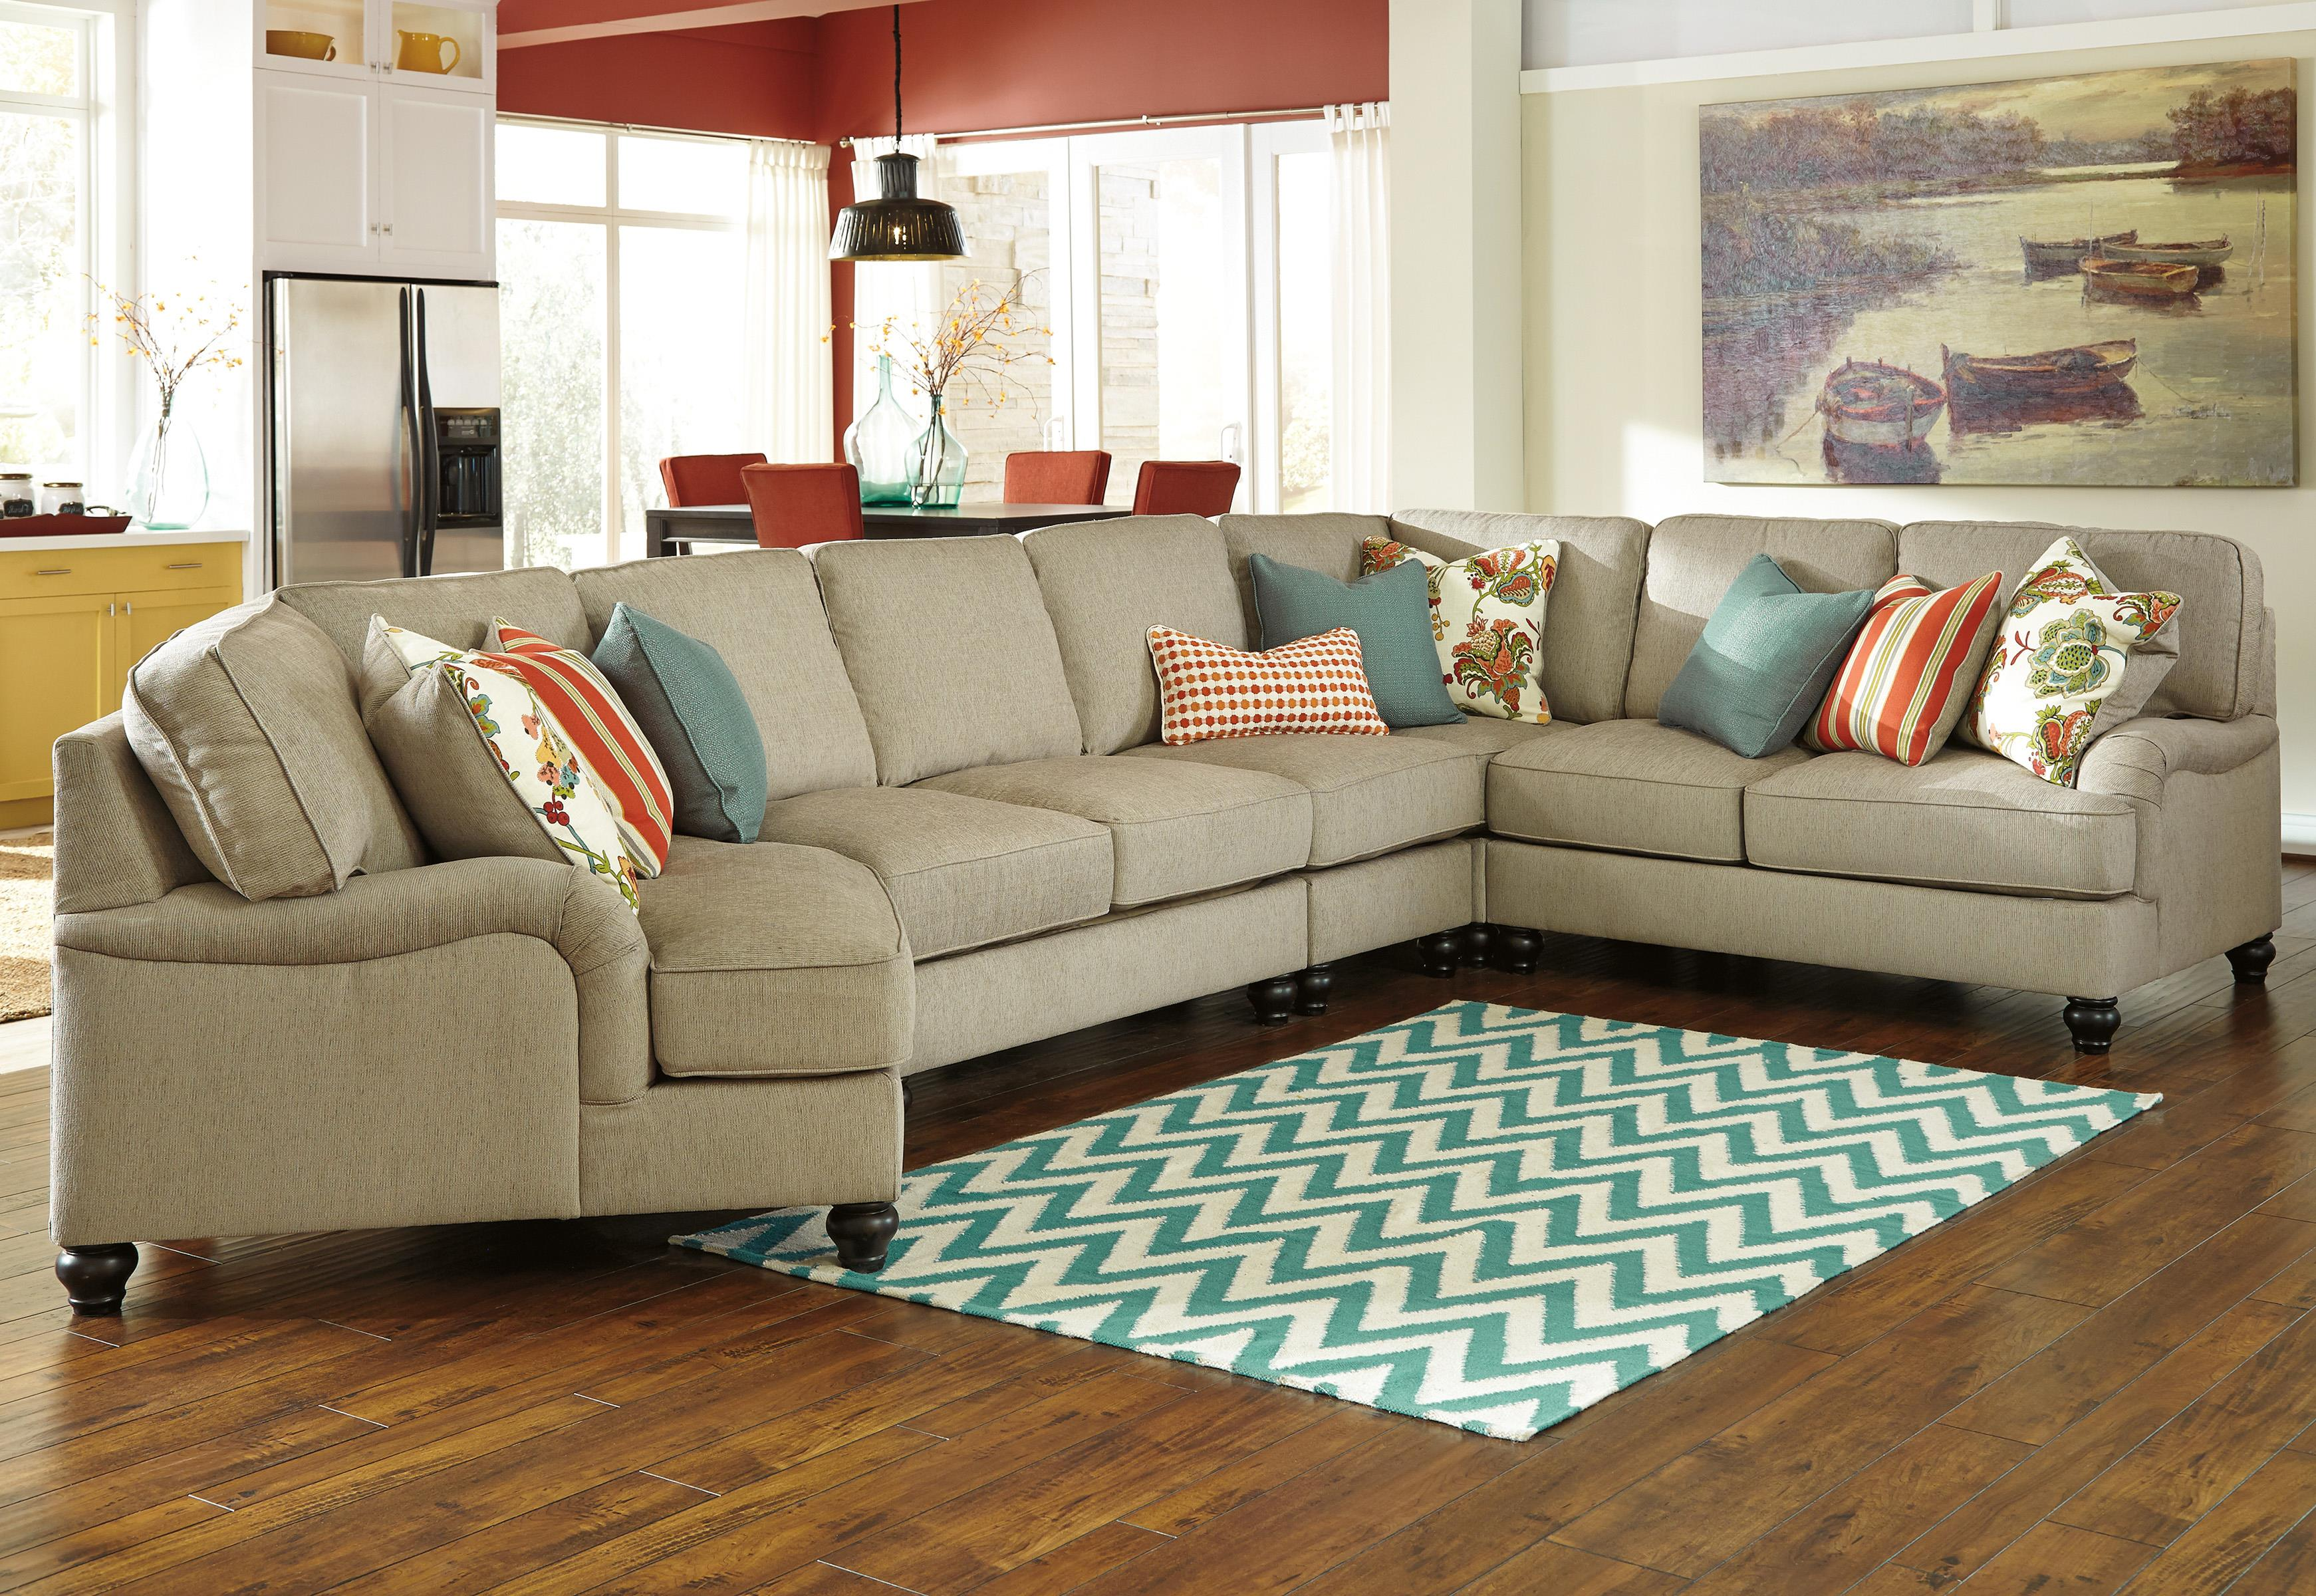 Benchcraft Kerridon 5-Piece Sectional with Left Cuddler - Item Number: 2630076+34+46+77+56